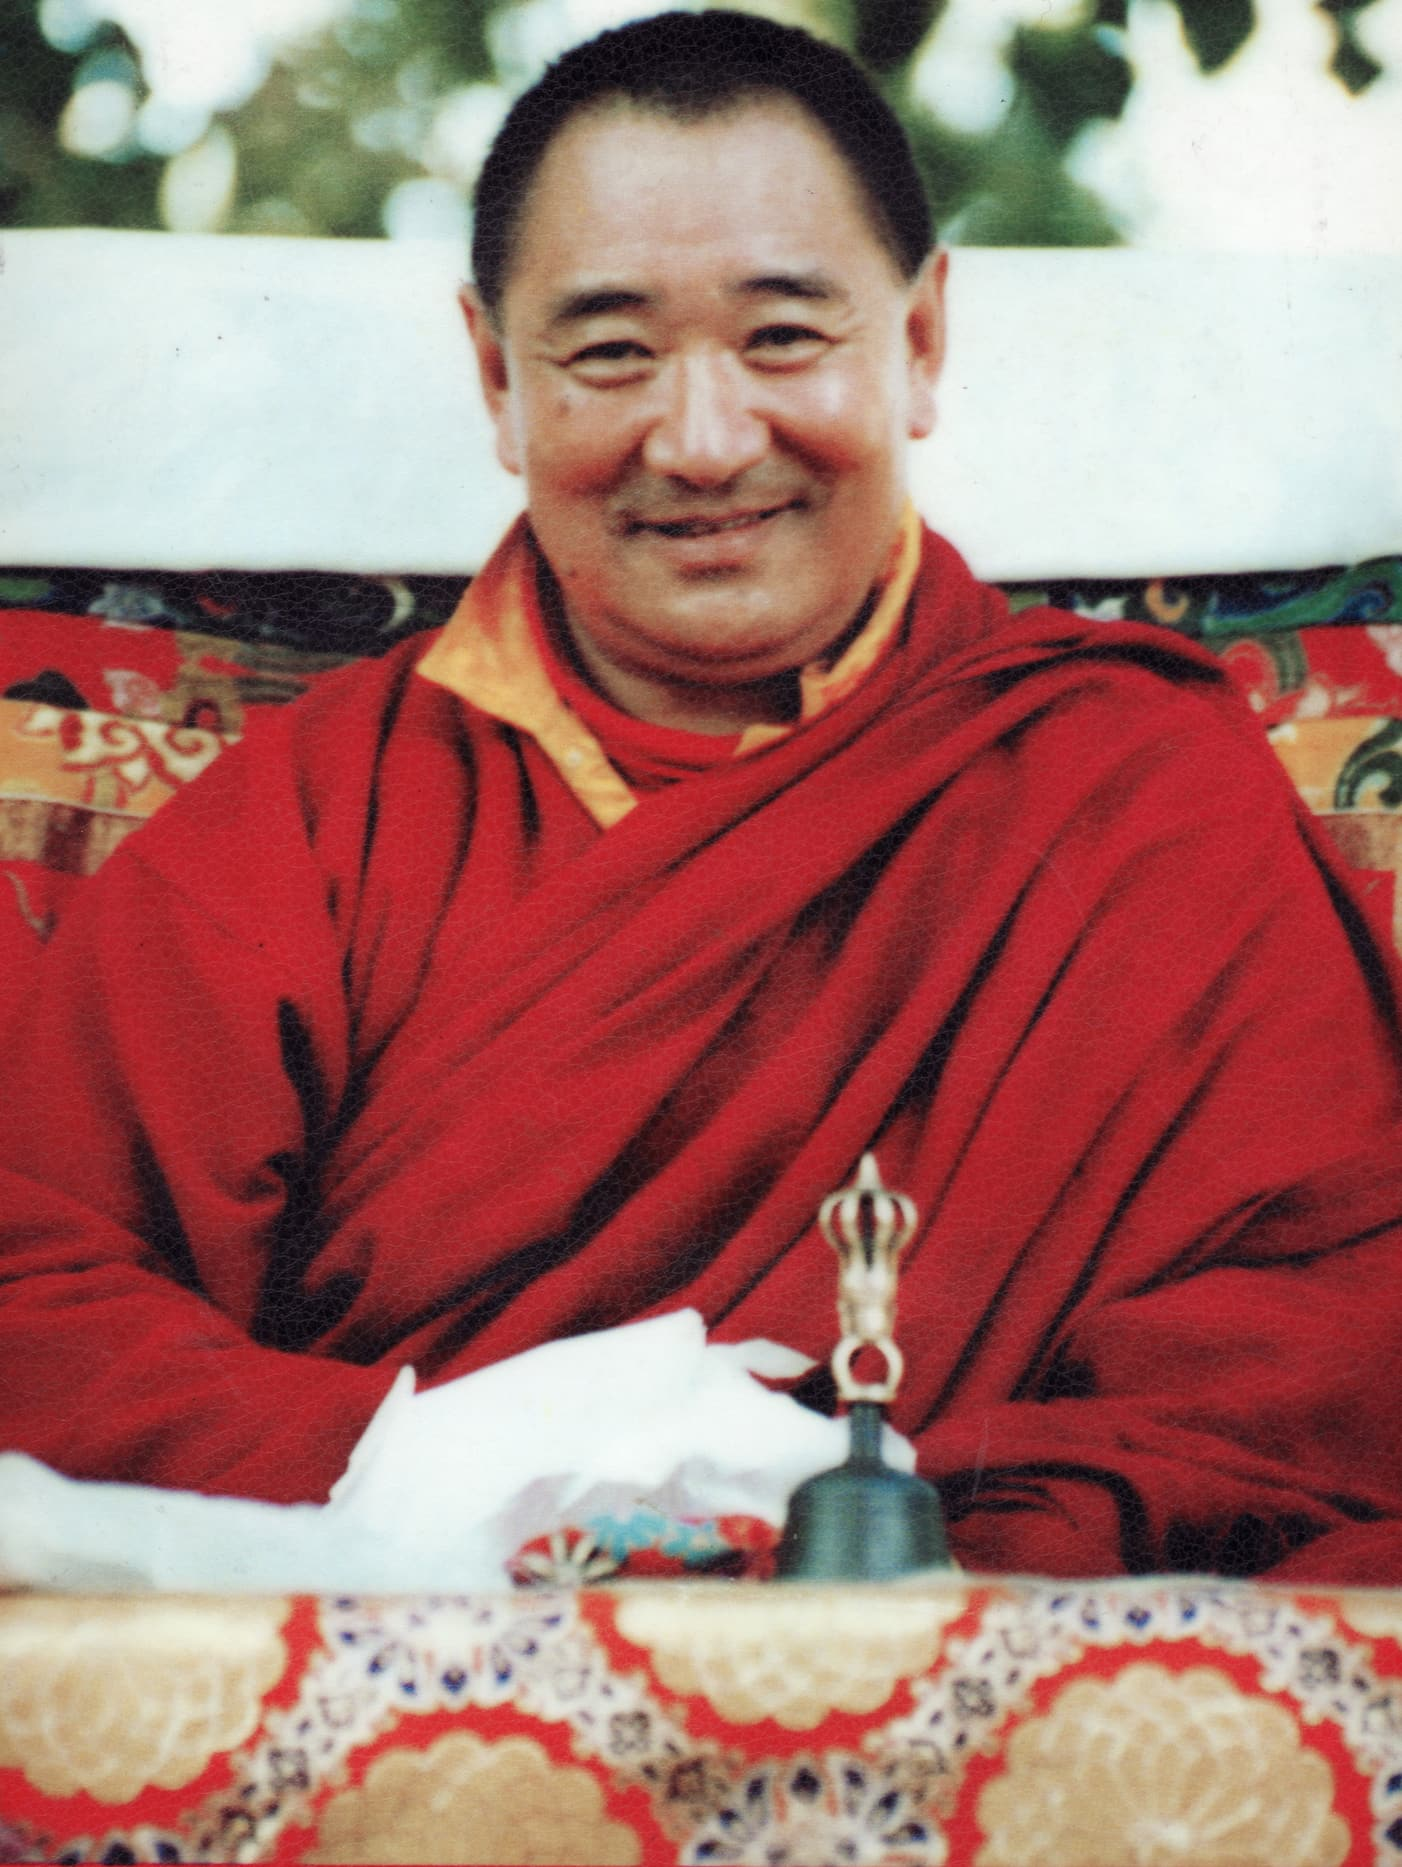 Our founder, Tarthang Tulku